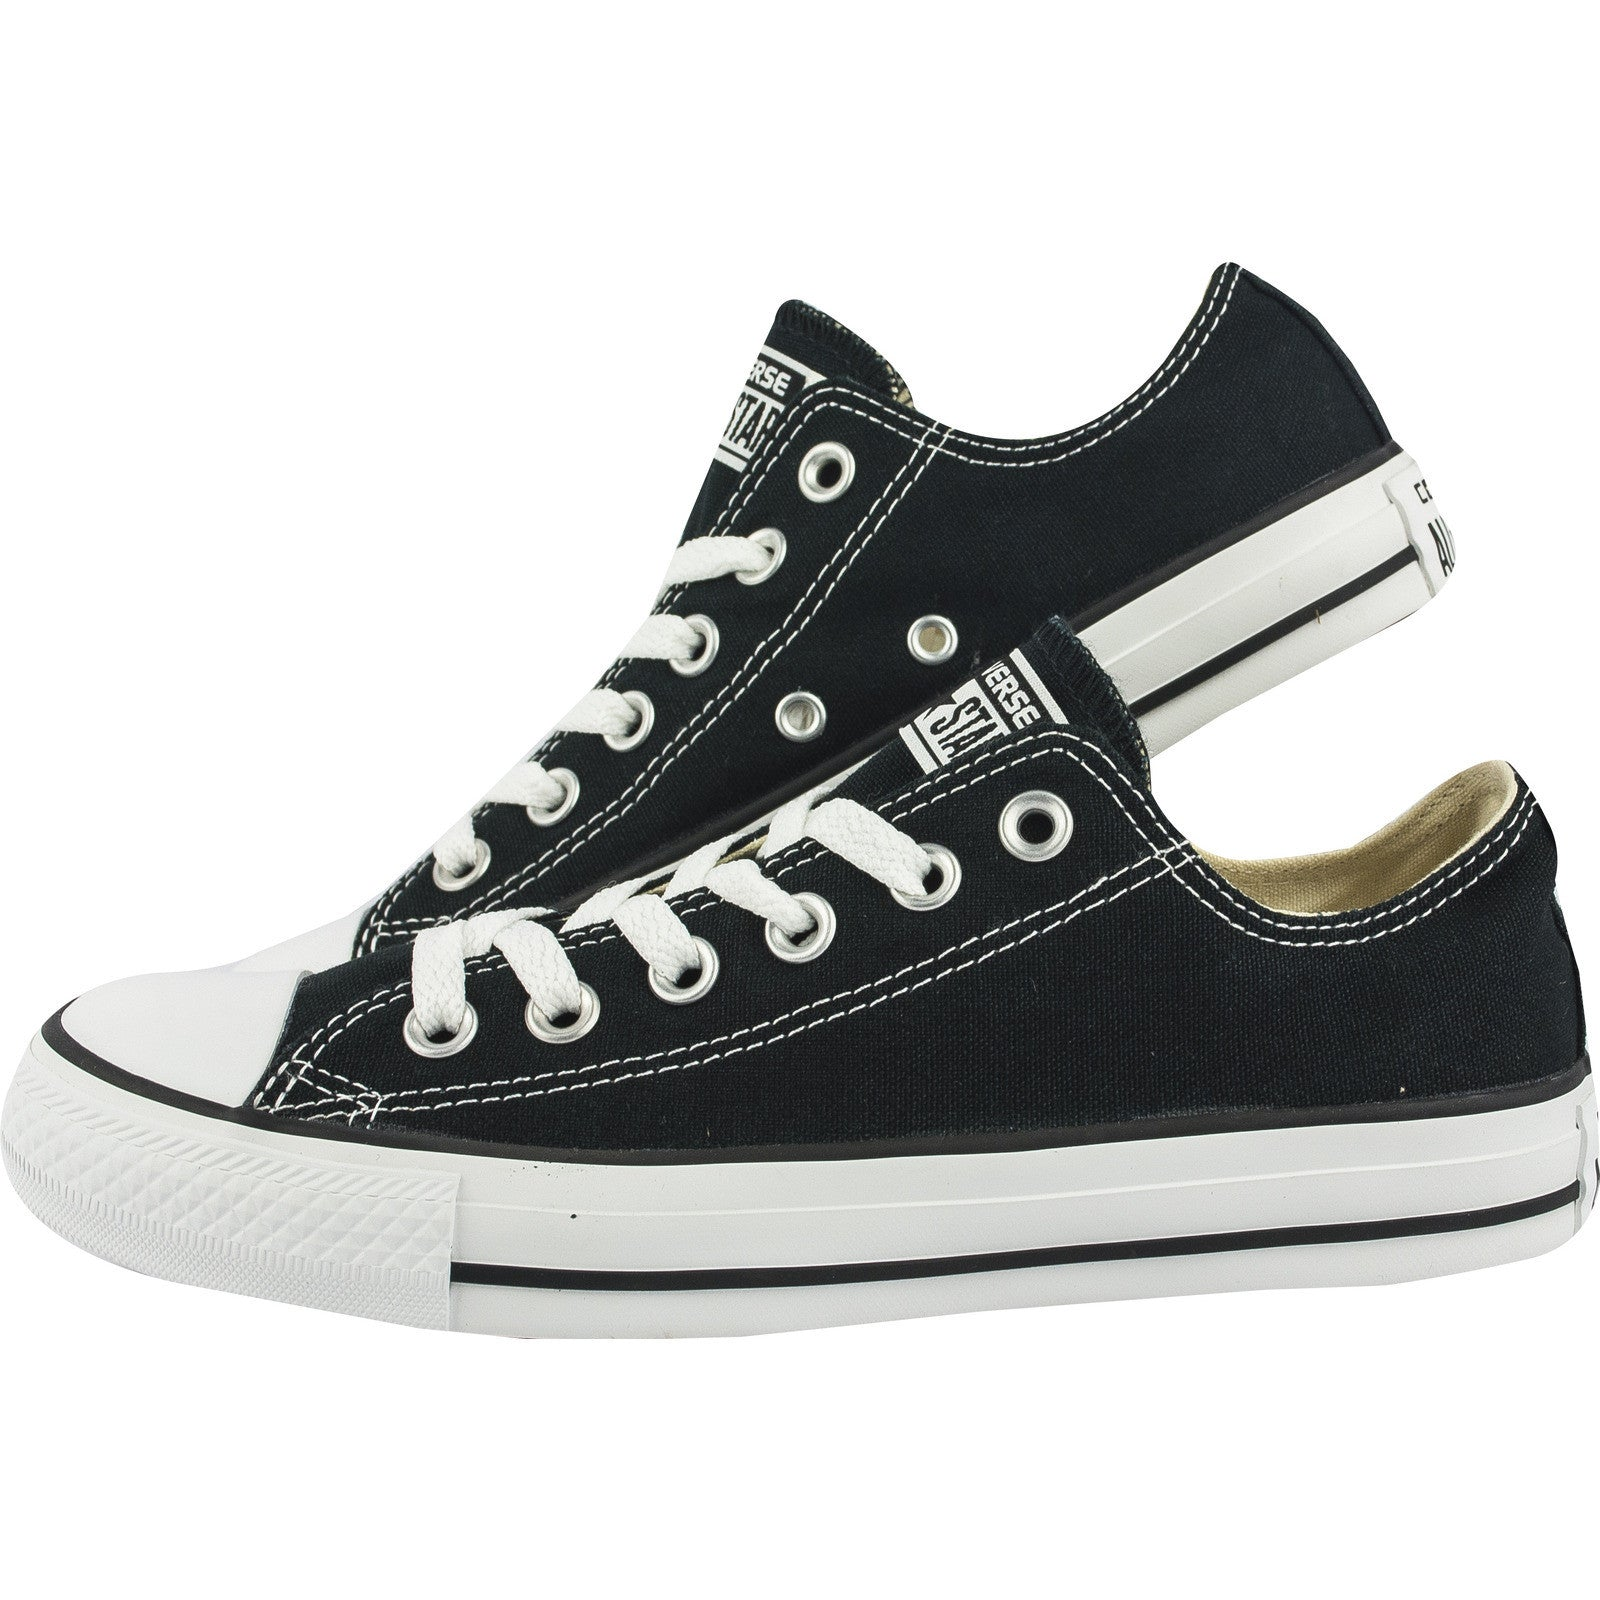 2019 year for women- Star all converse black low photo